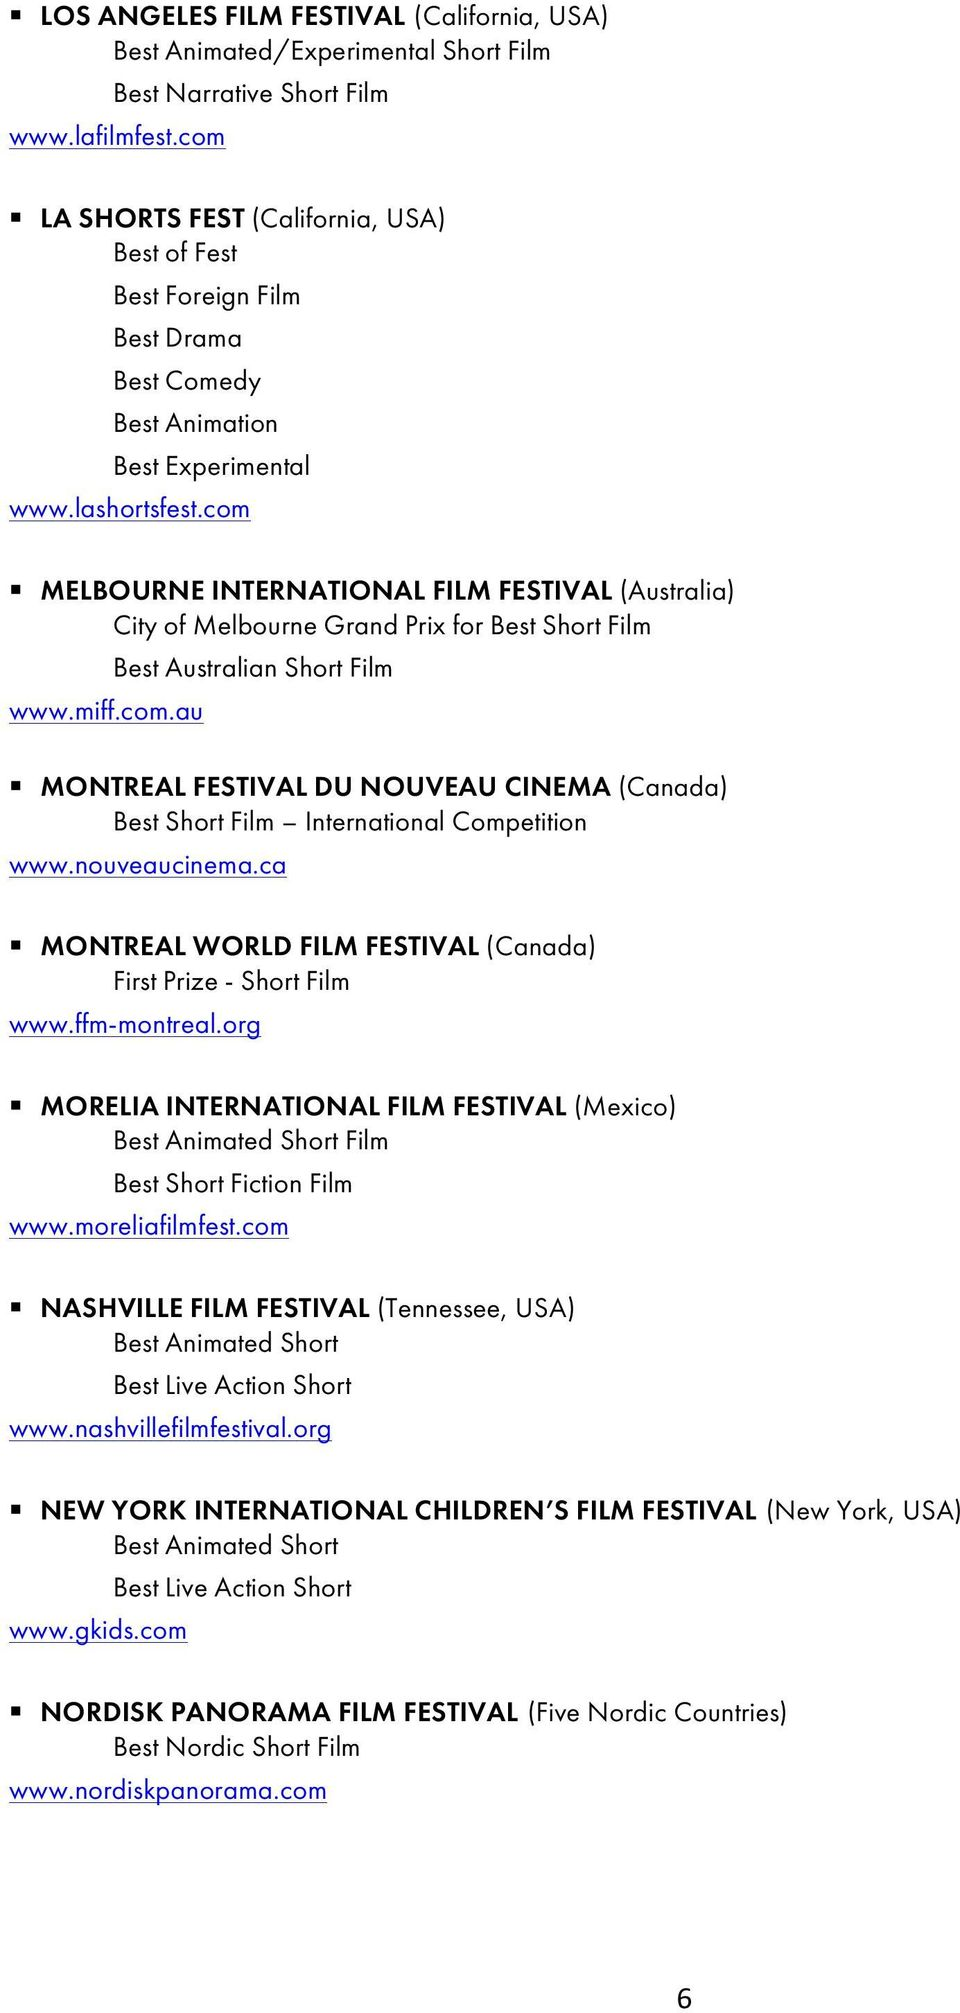 com MELBOURNE INTERNATIONAL FILM FESTIVAL (Australia) City of Melbourne Grand Prix for Best Short Film www.miff.com.au Best Australian Short Film MONTREAL FESTIVAL DU NOUVEAU CINEMA (Canada) Best Short Film International Competition www.